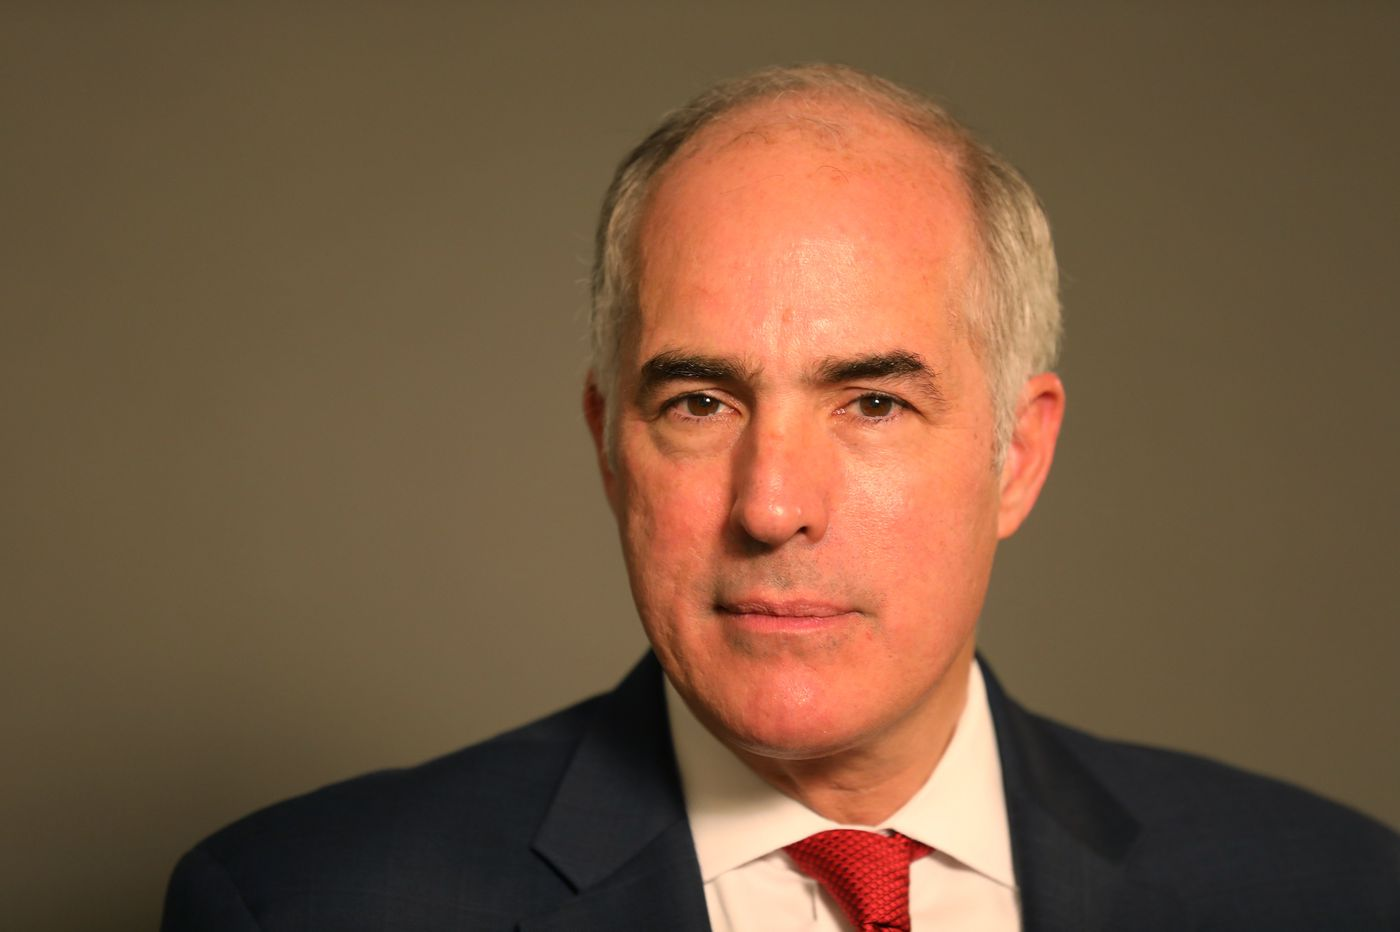 Our pick for U.S. Senate: Bob Casey, Jr. | Endorsement